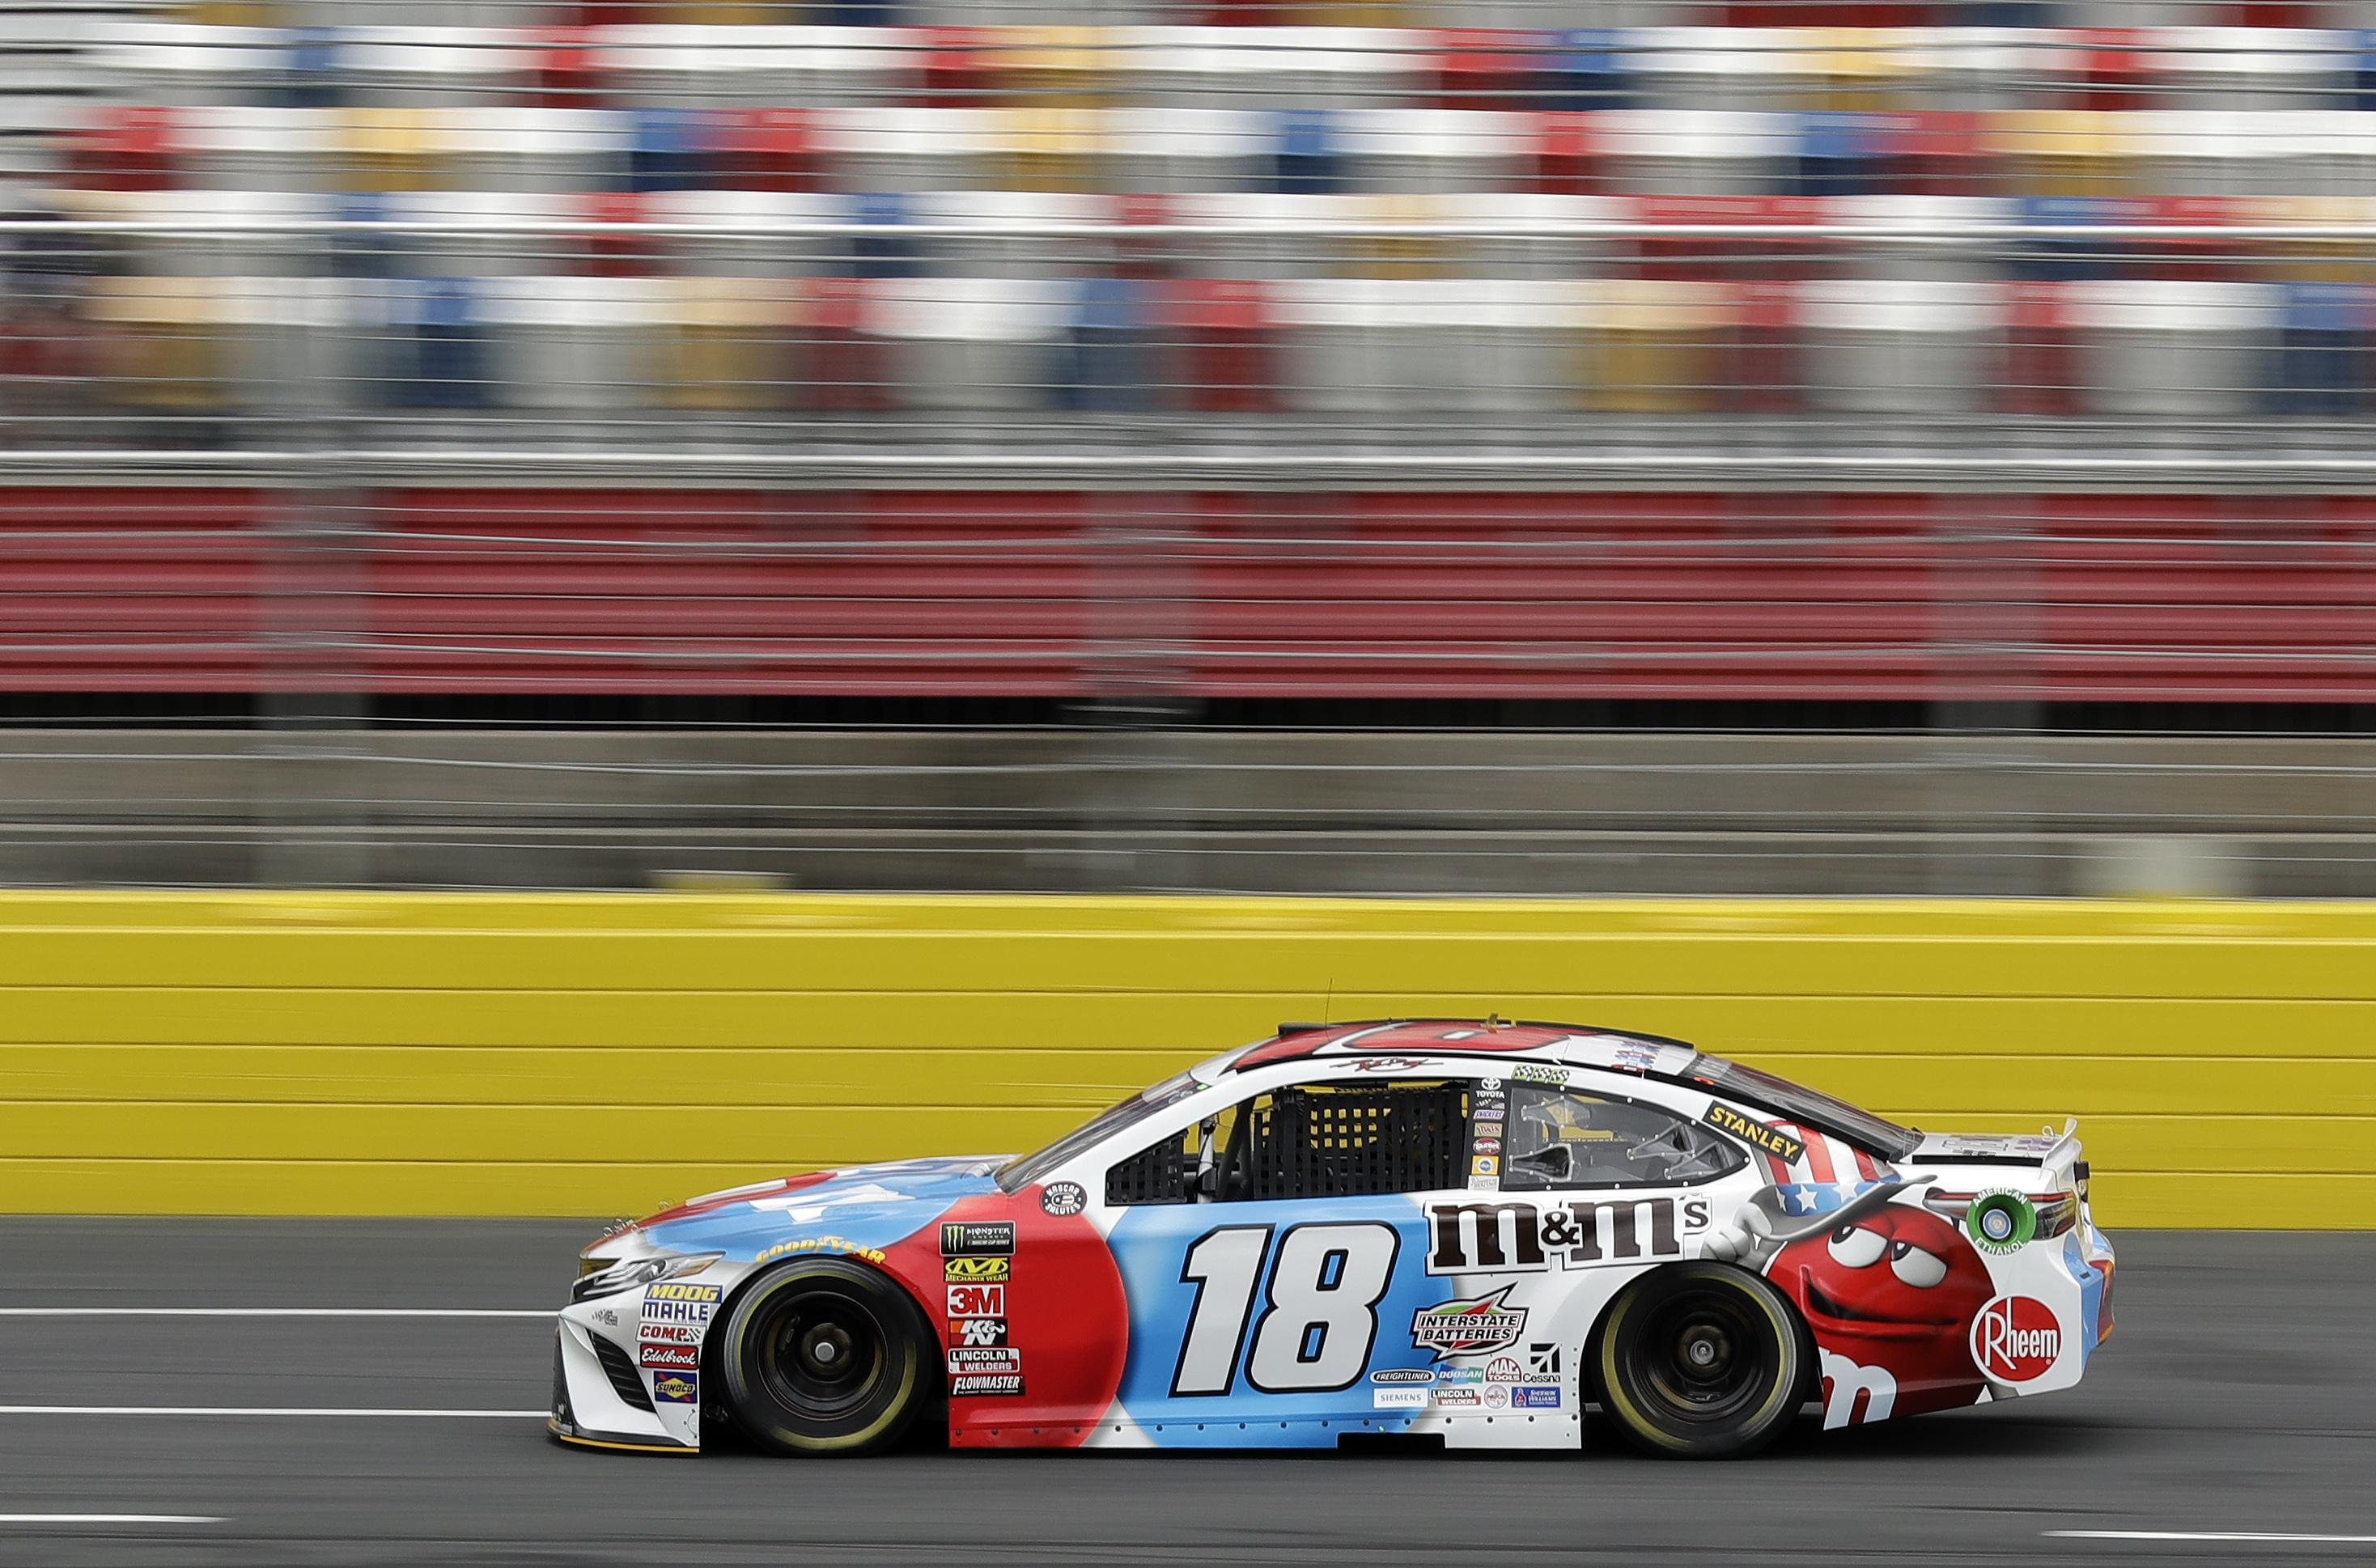 Kyle busch captures pole at charlotte kevin harvick starts last the spokesman review - Pictures of kyle busch s car ...